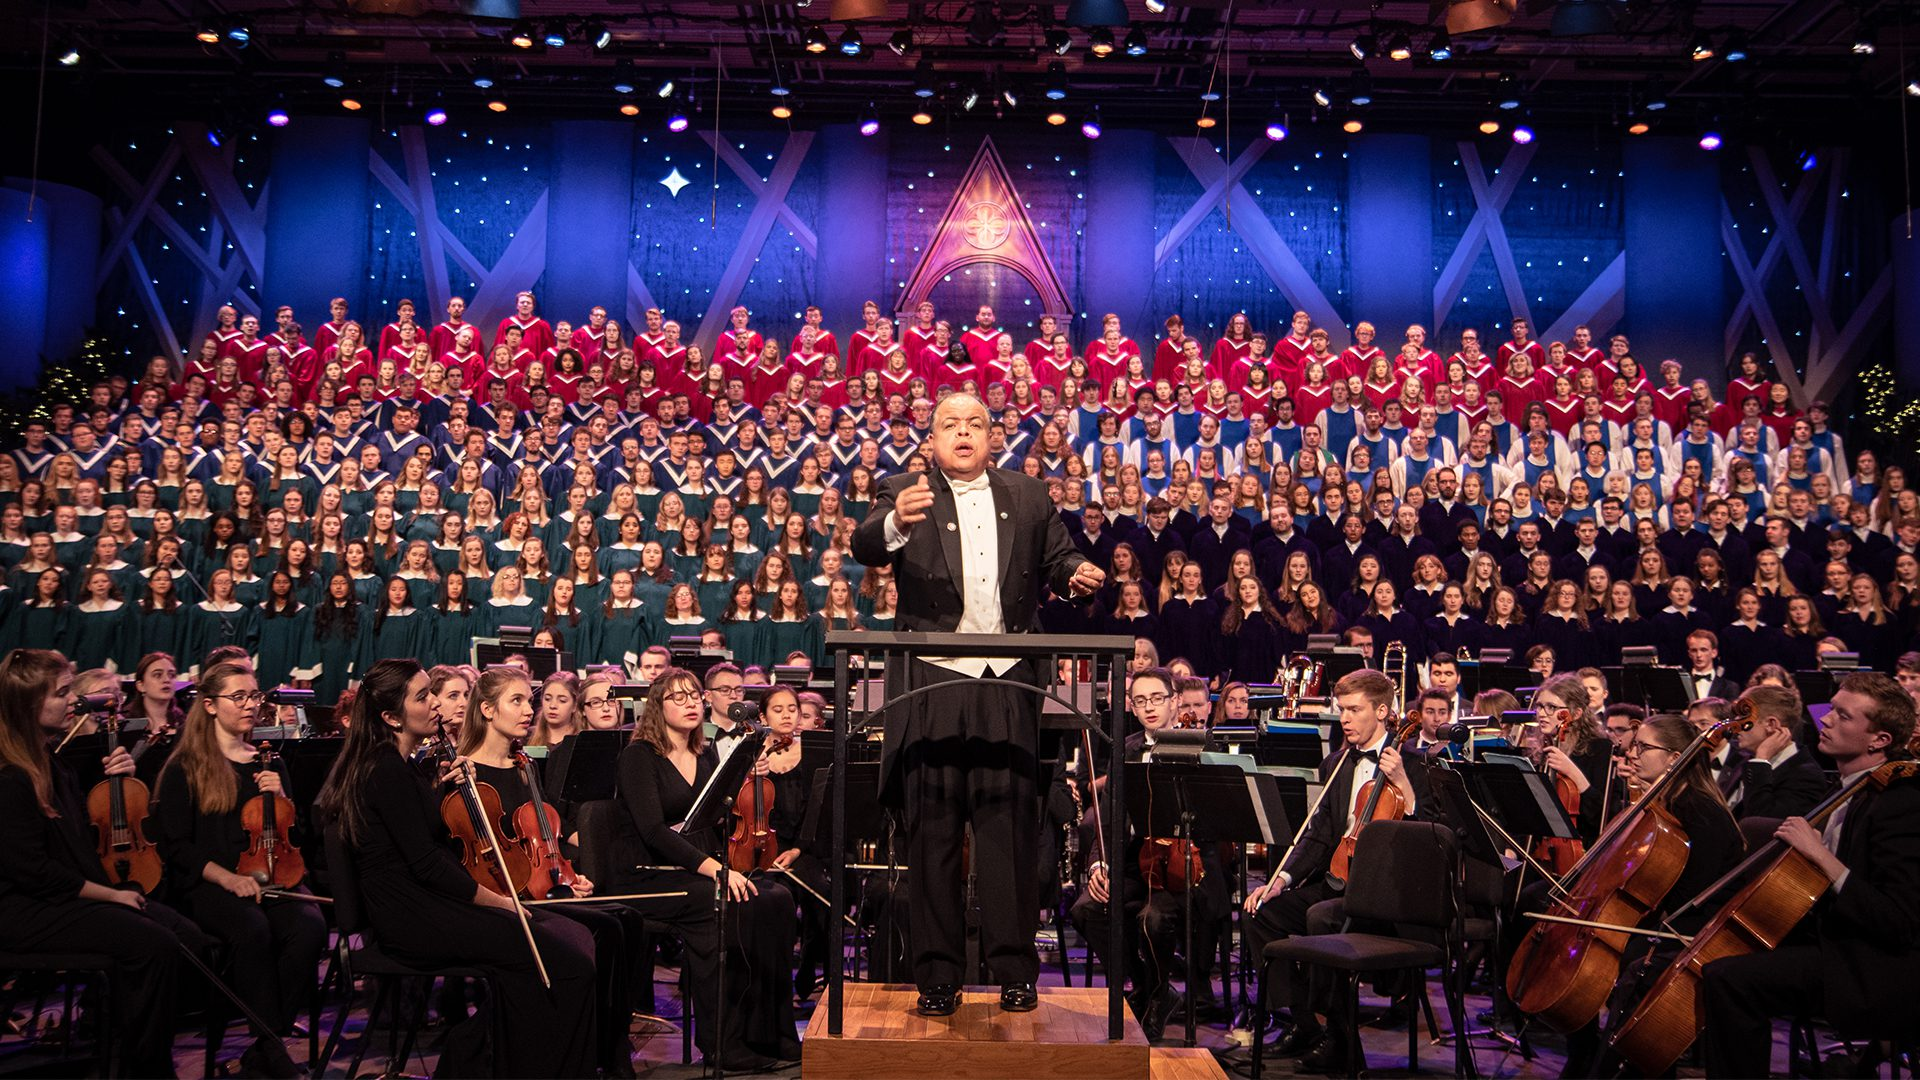 Anton Armstrong '78 conducts the massed choirs and St. Olaf Orchestra during the 2019 Christmas Festival.